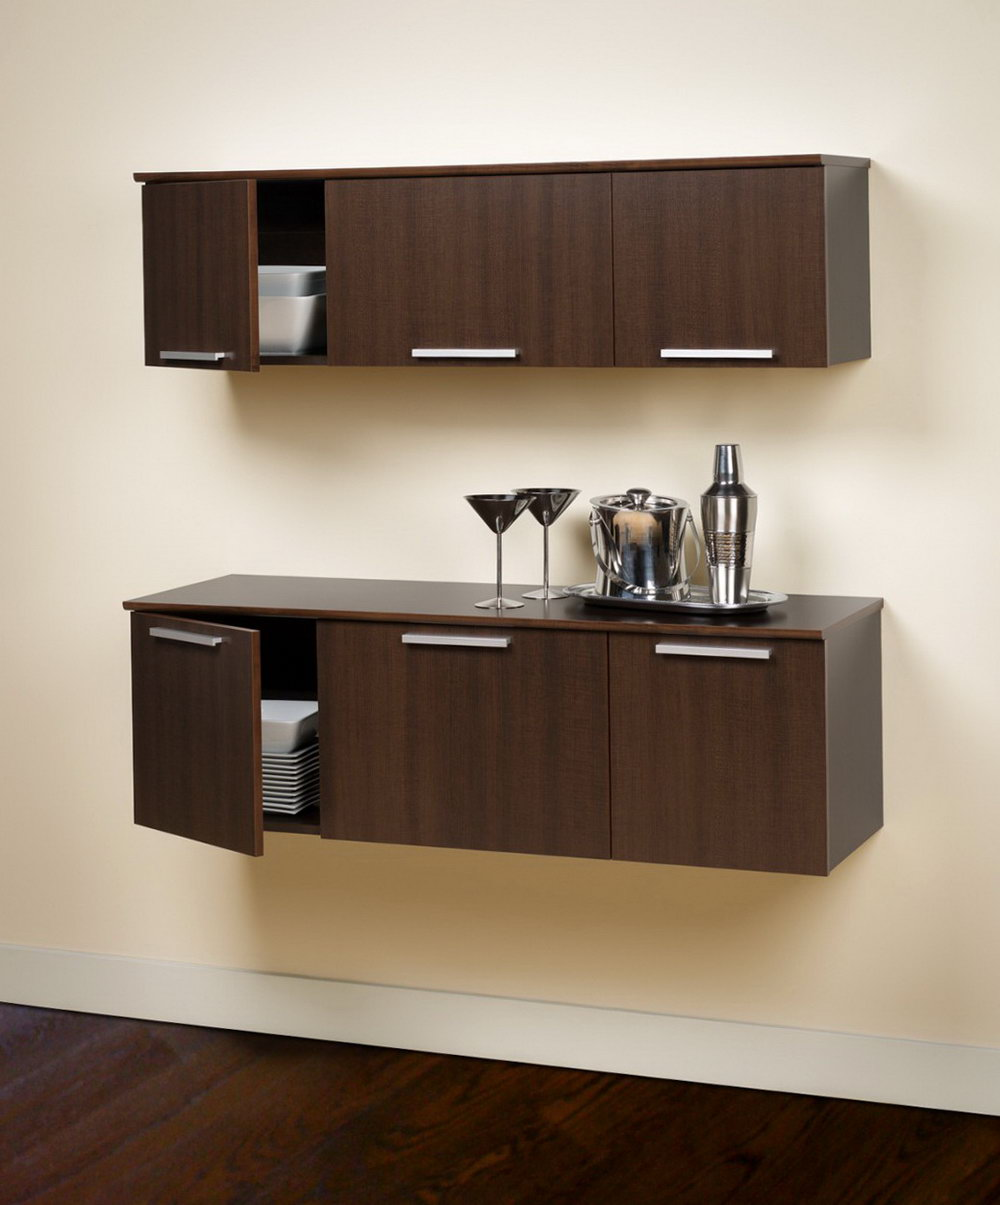 Office Wall Storage Cabinets